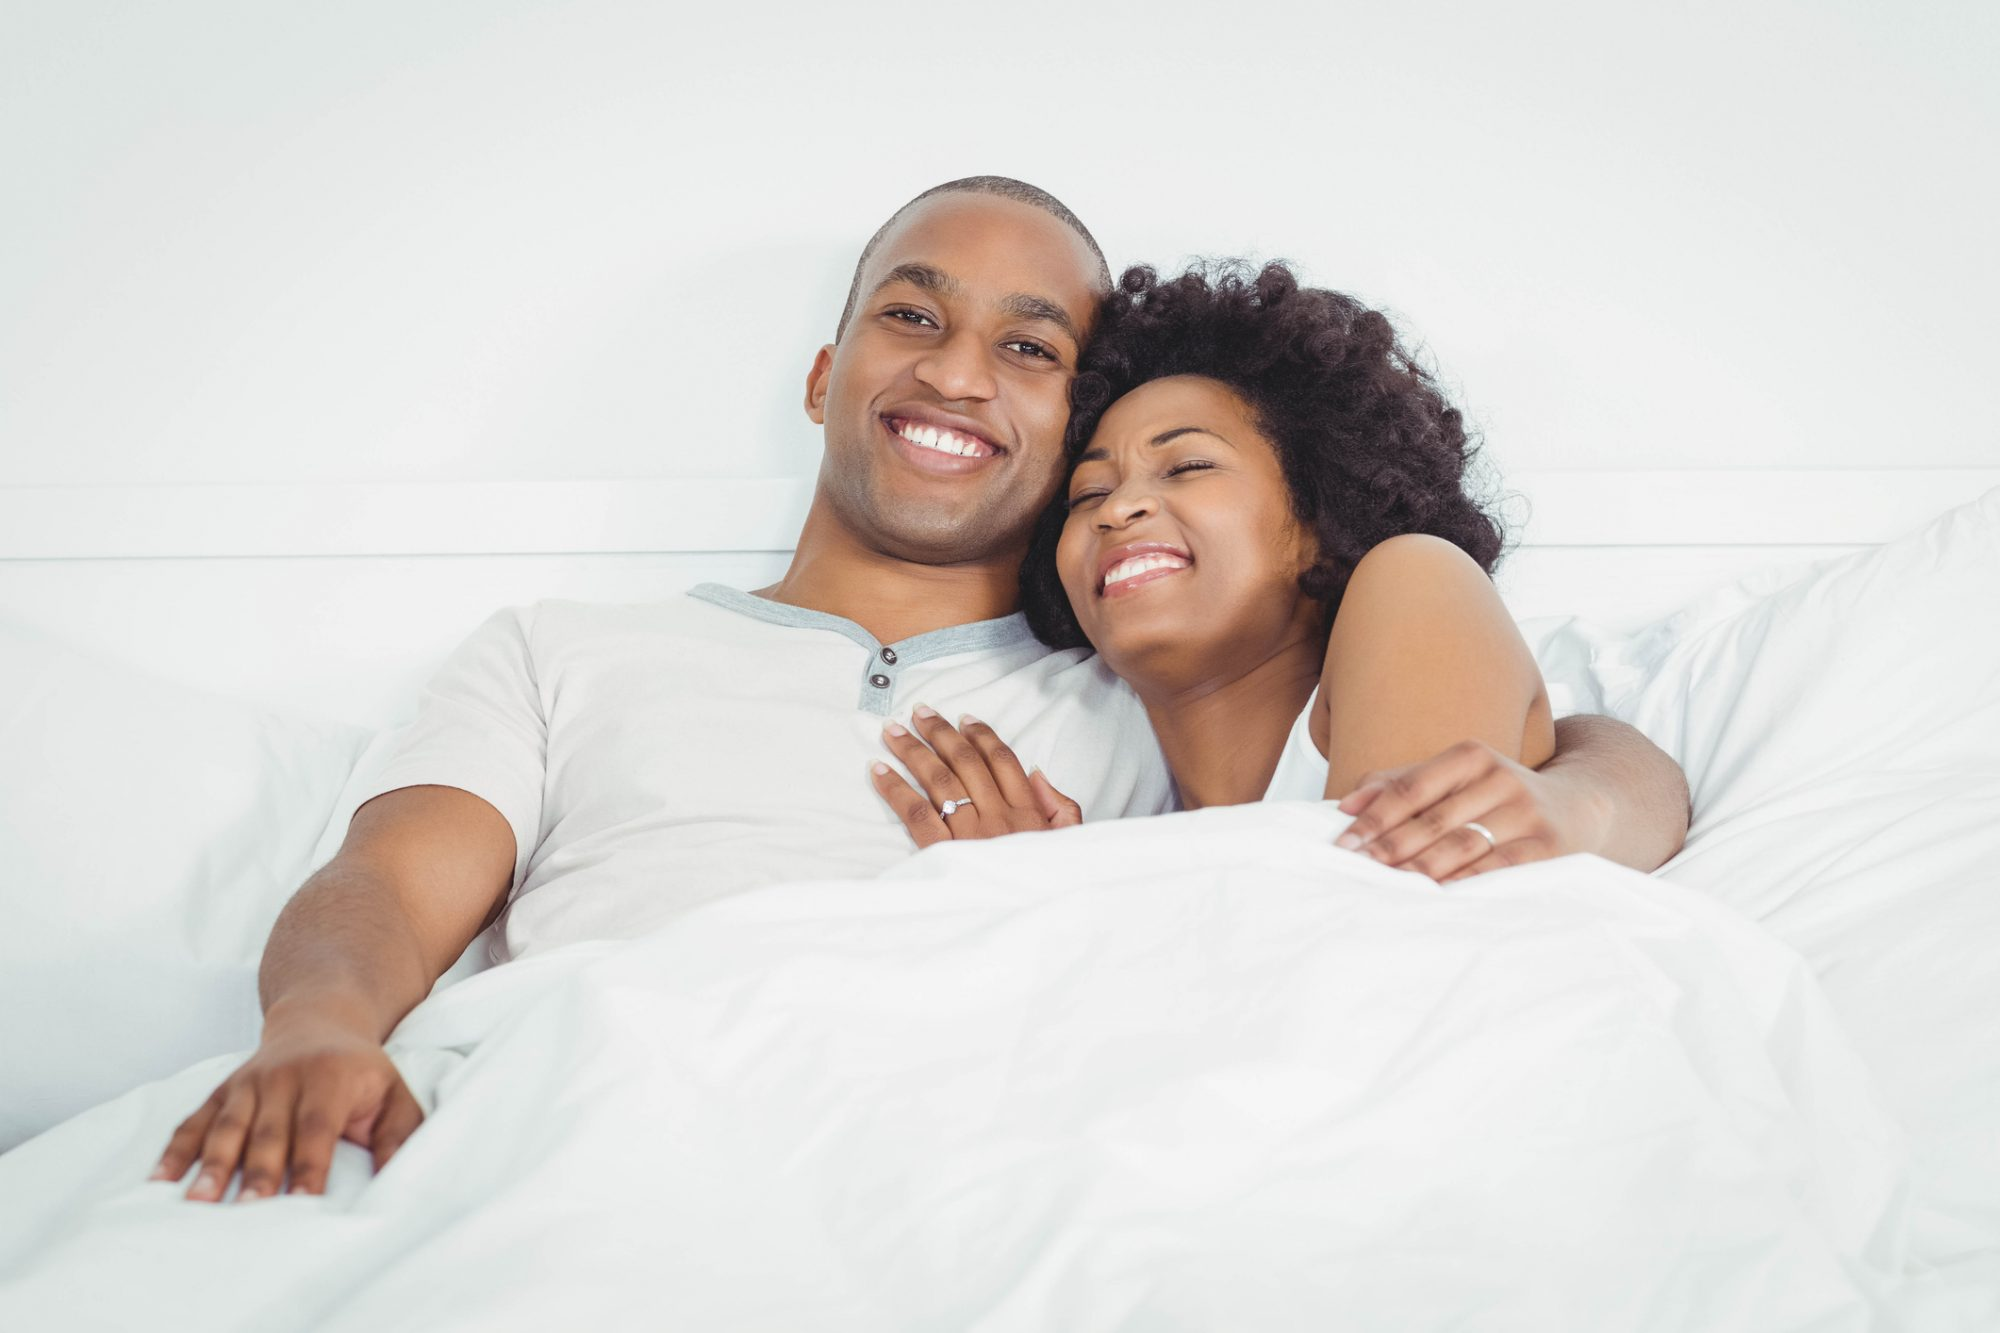 Happy couple on bed laughing